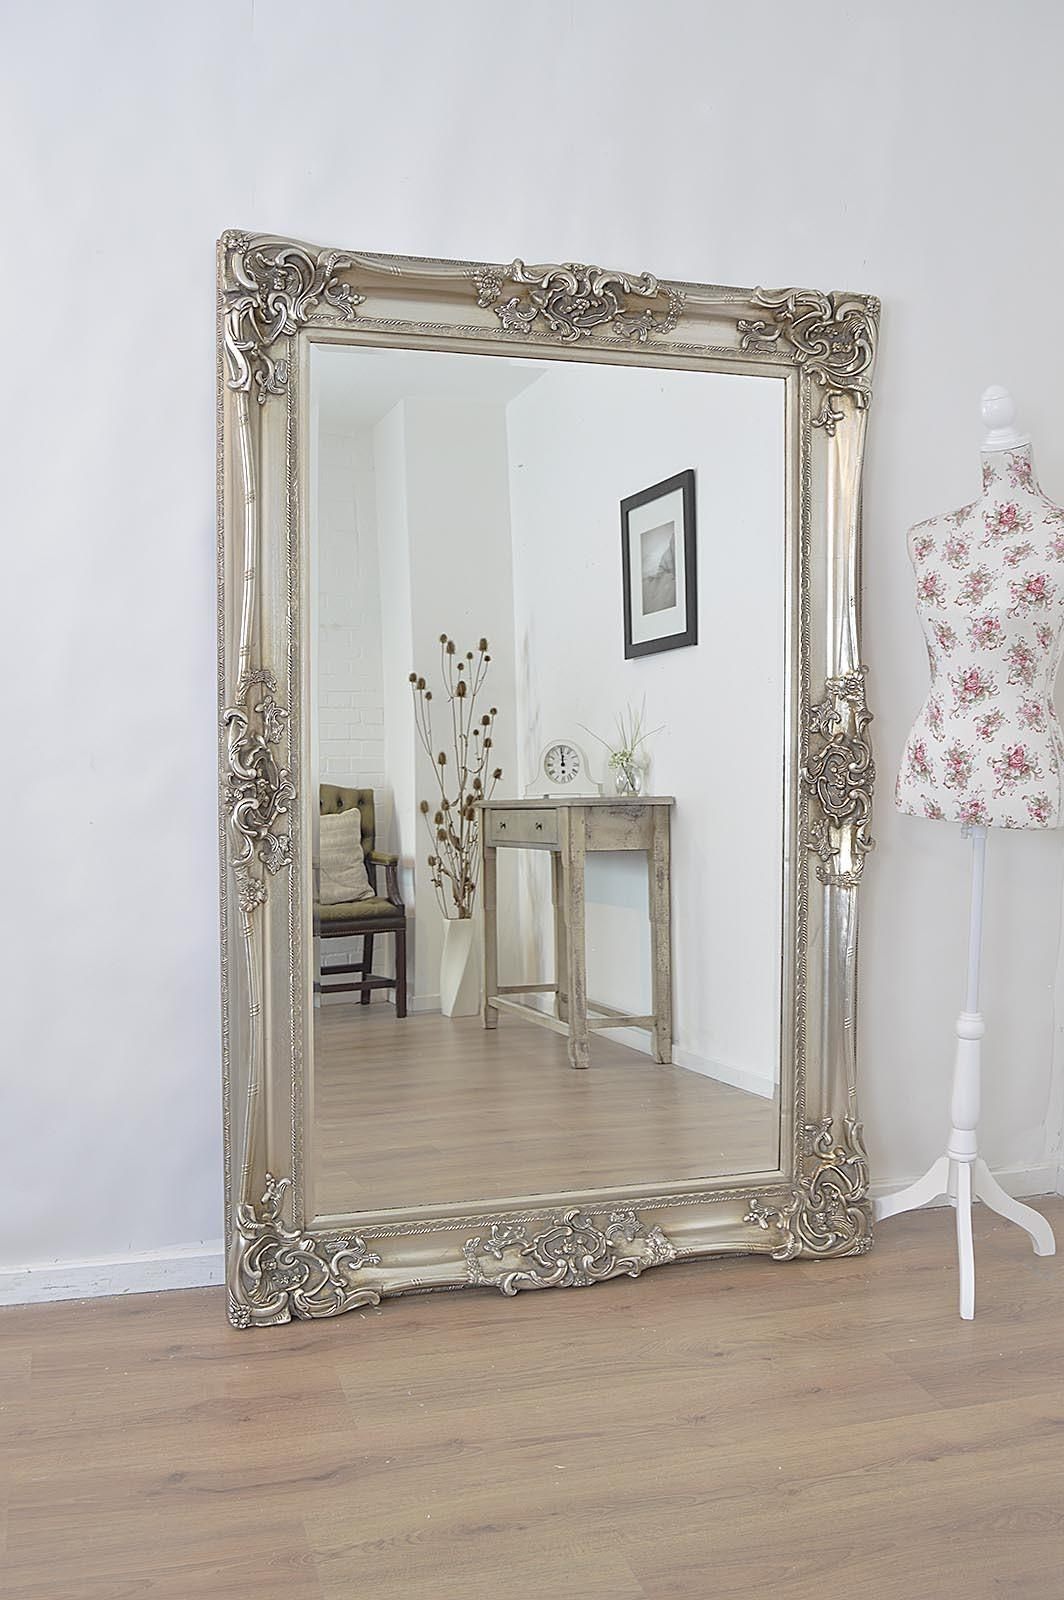 20 Collection of Antique Mirrors for Sale Vintage Mirrors